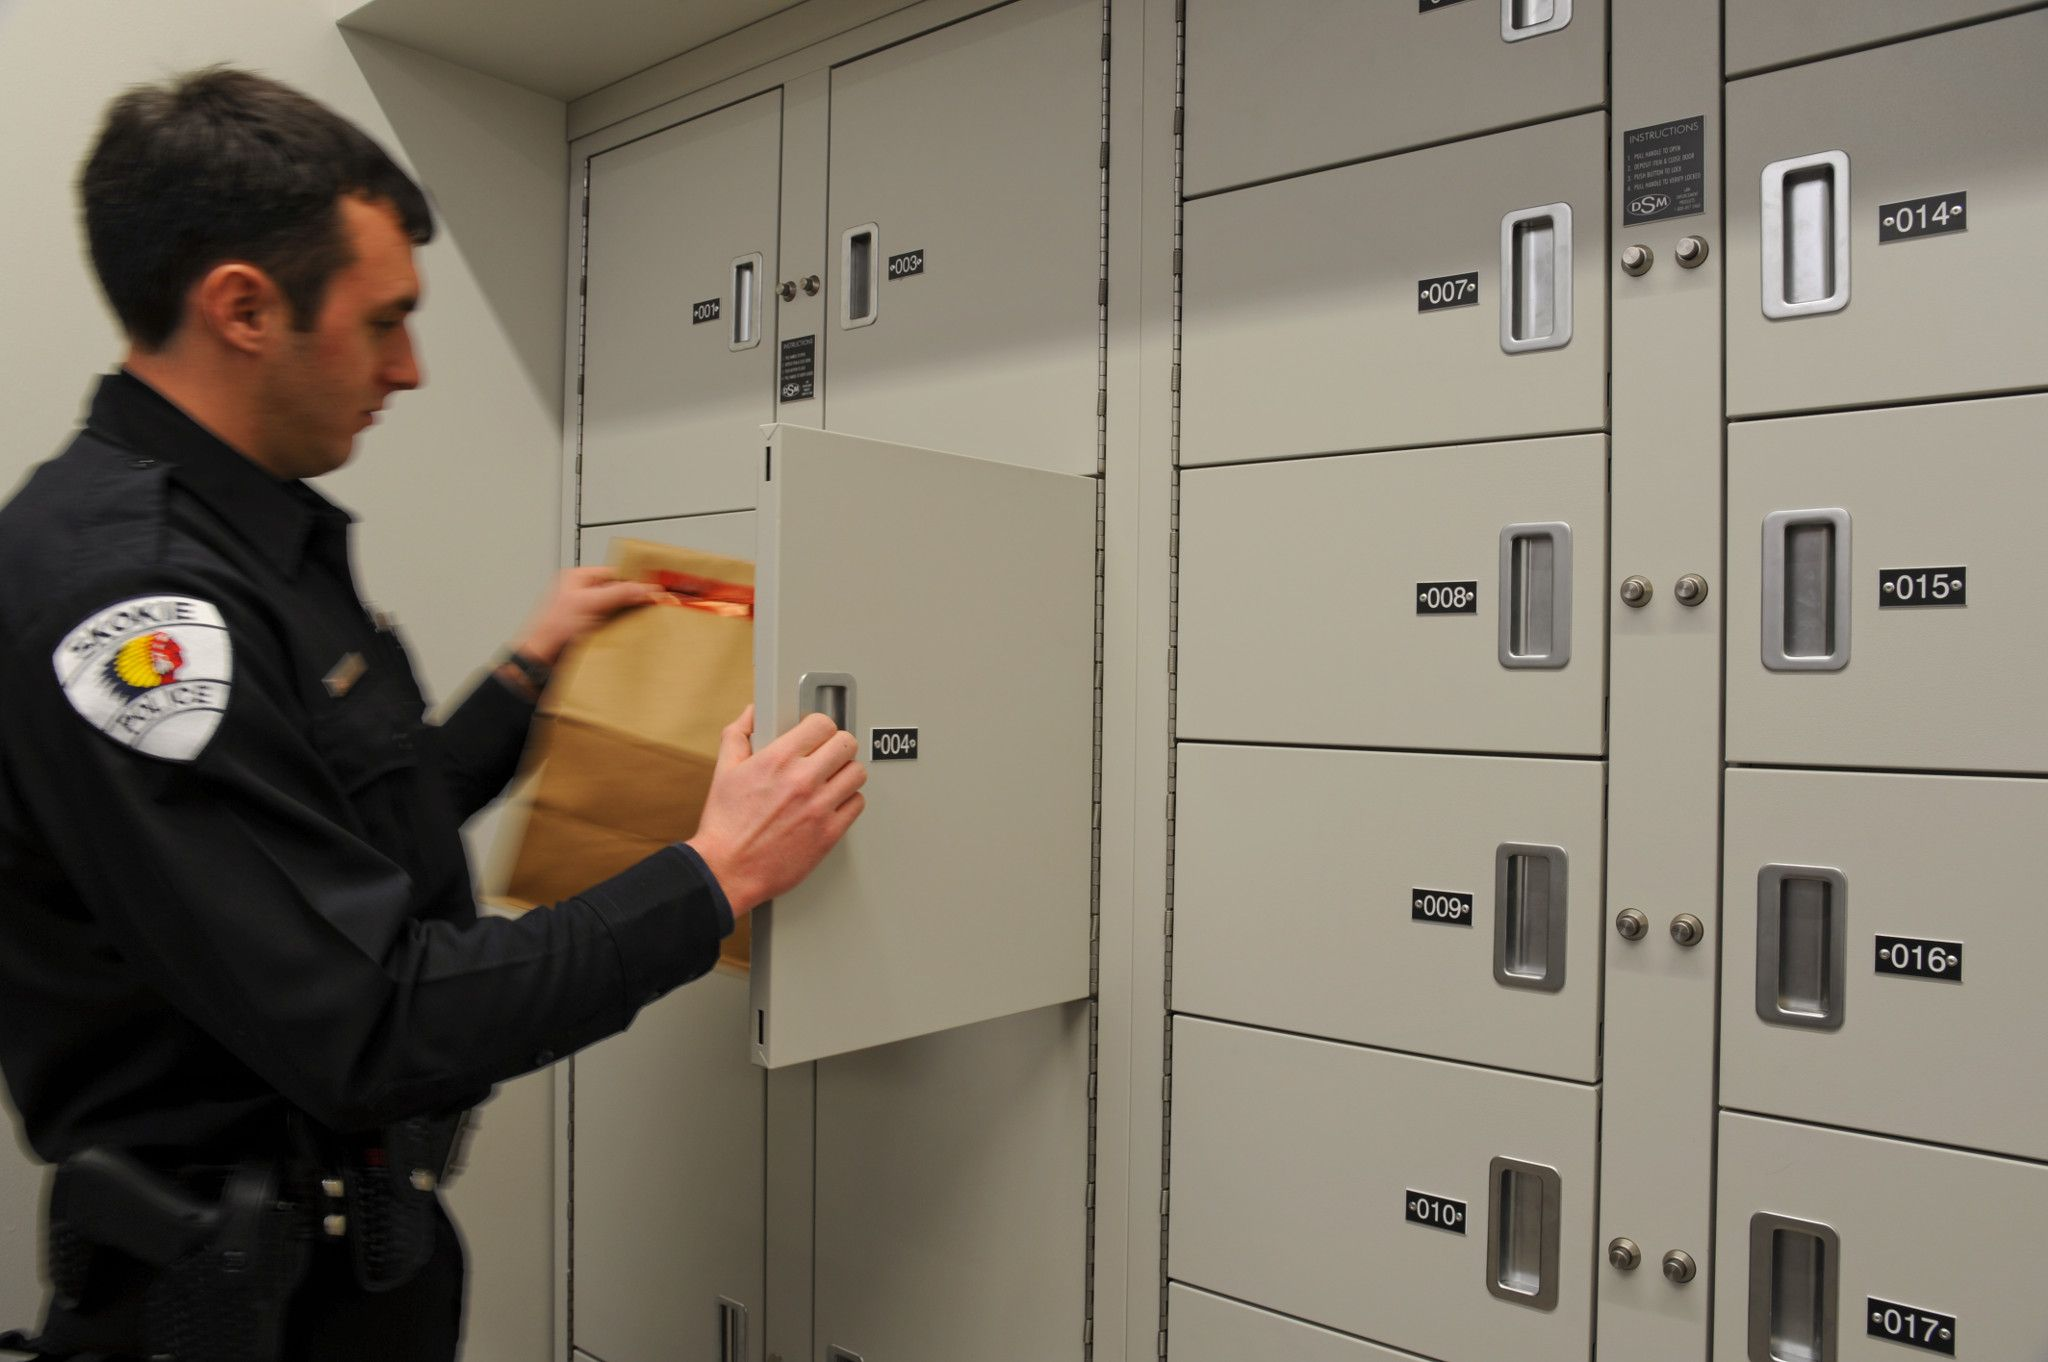 Police officer depositing evidence into secure pass thru locker